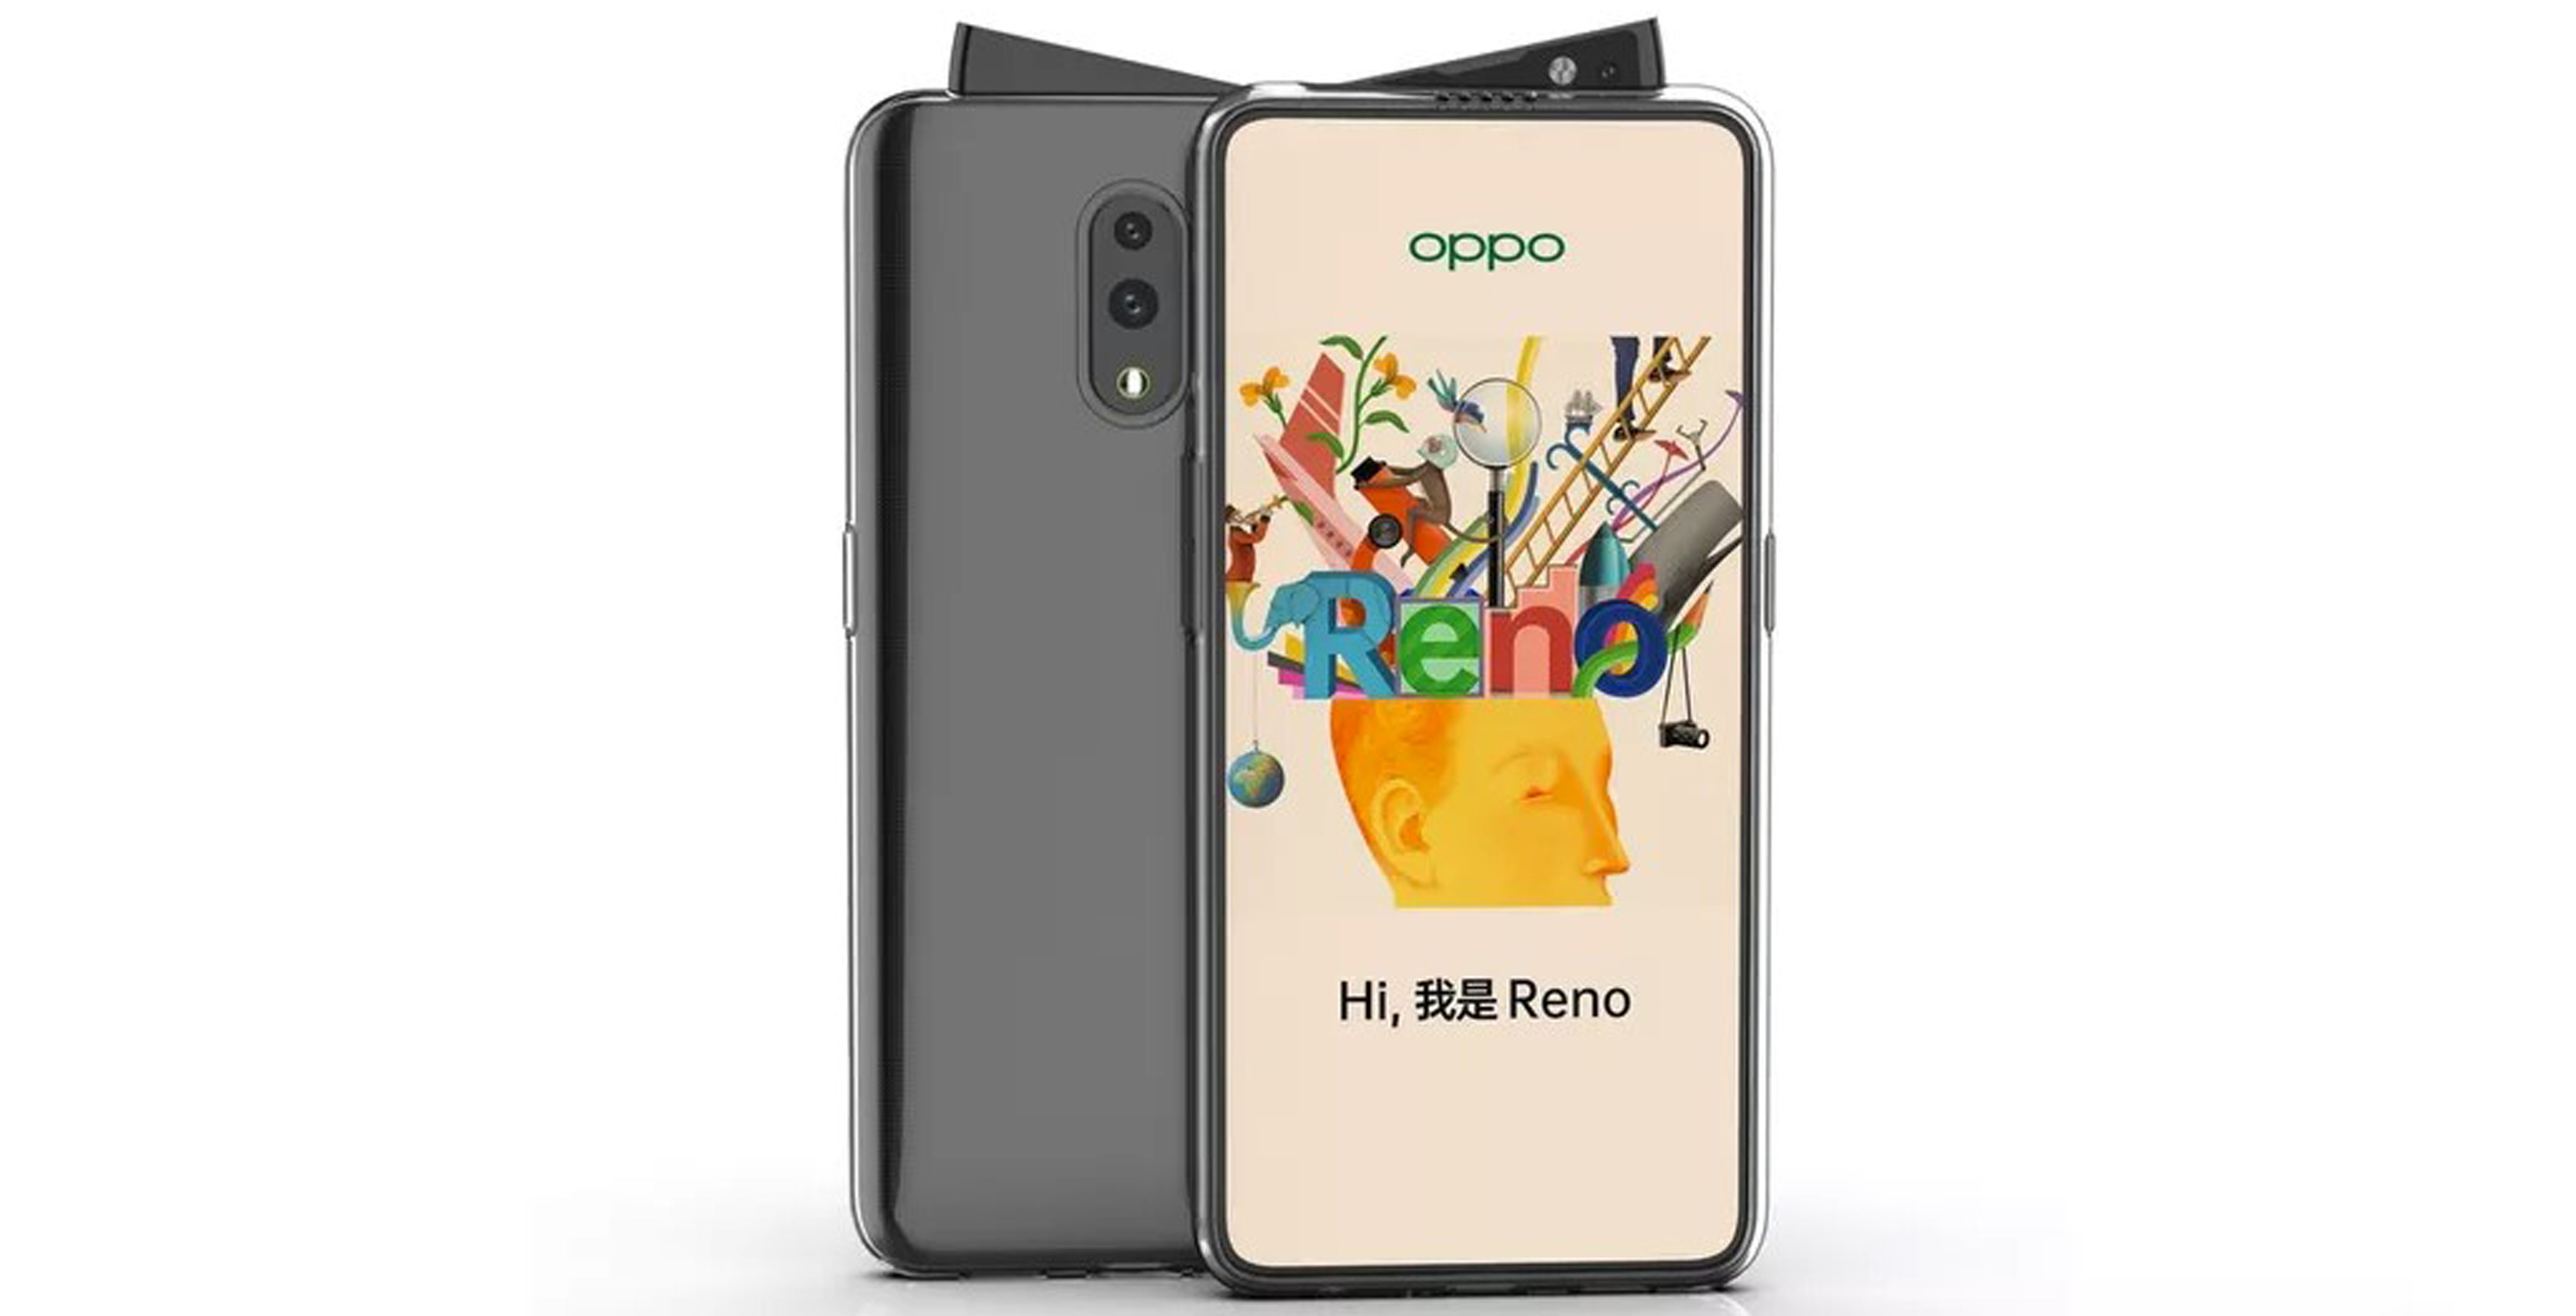 Oppo Reno leaks out with unique pop-up camera design